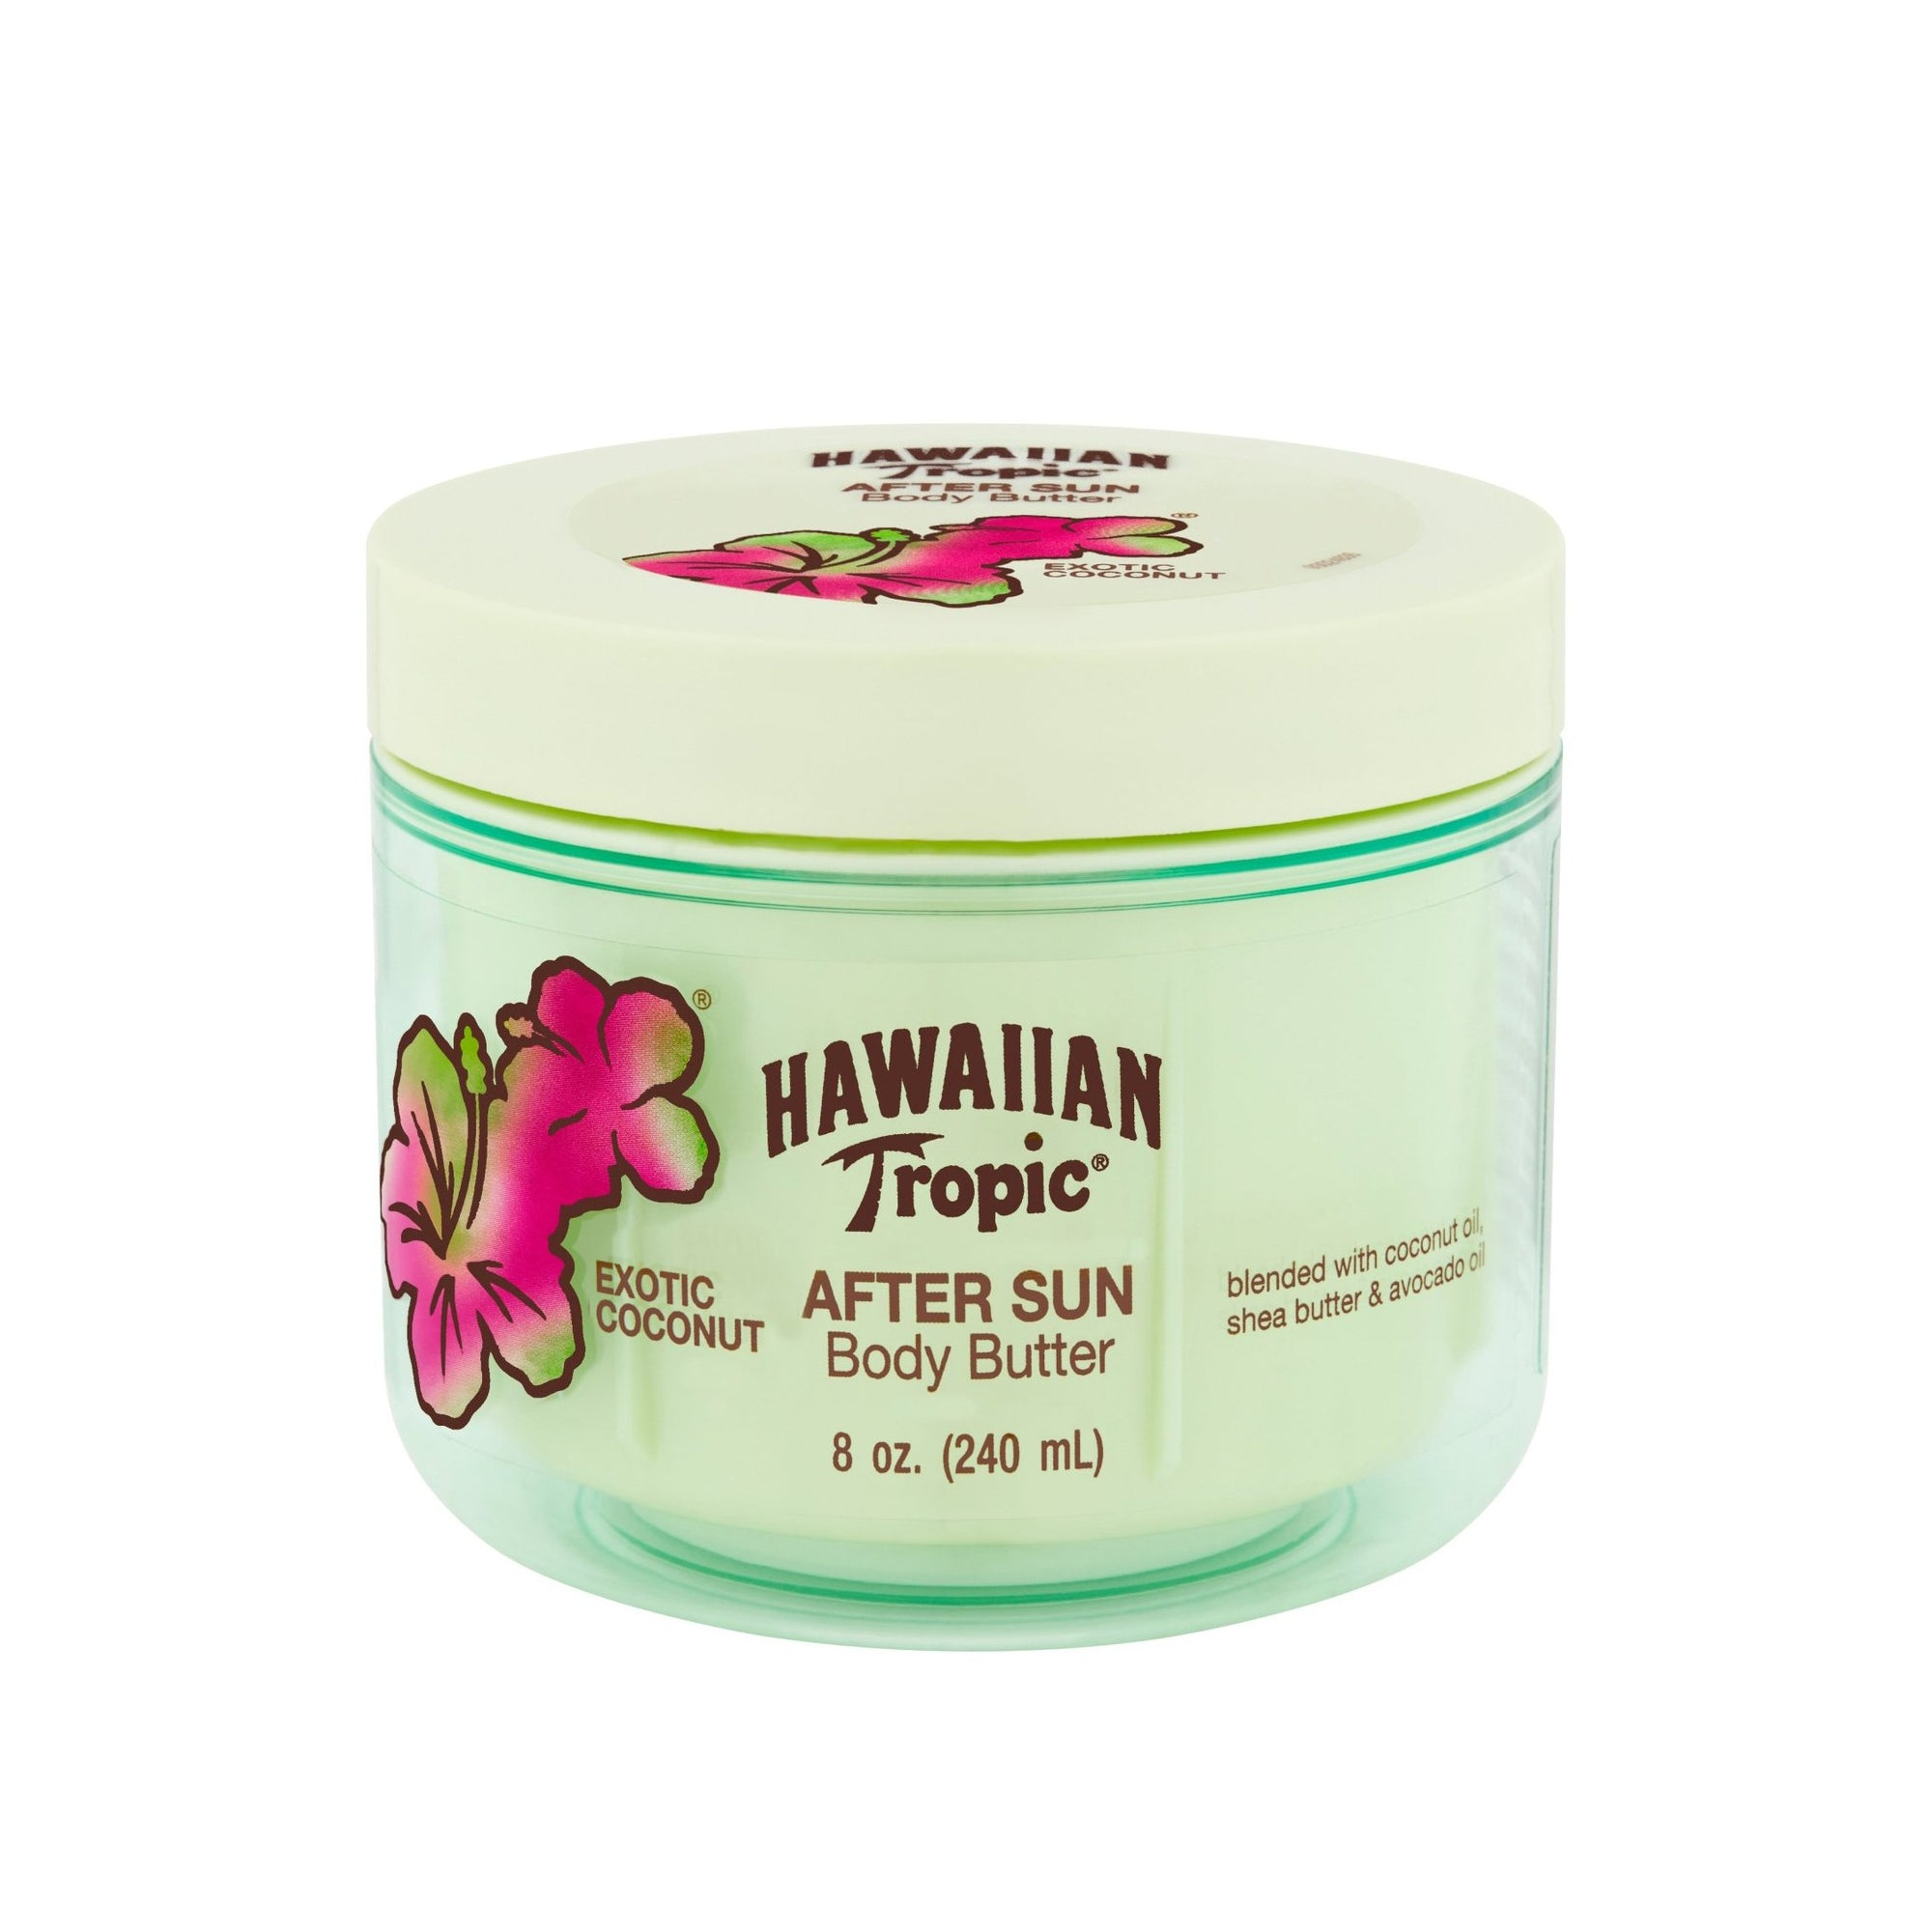 Hawaiian Tropic Coconut Body Butter